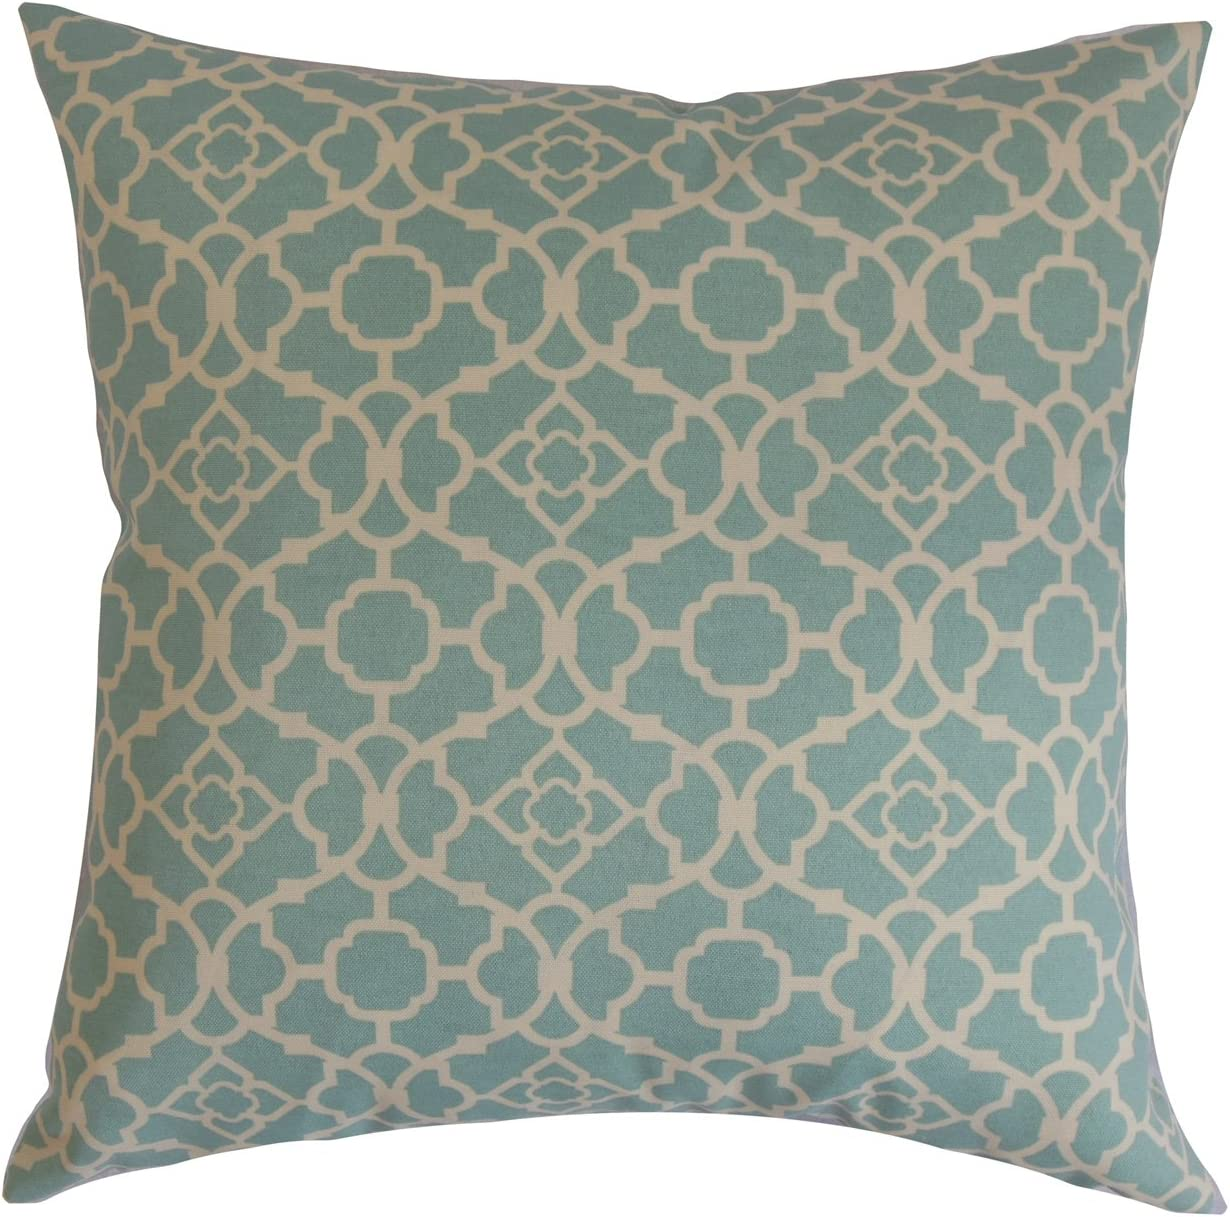 The Pillow Collection Taife Geometric Pillow, Teal White